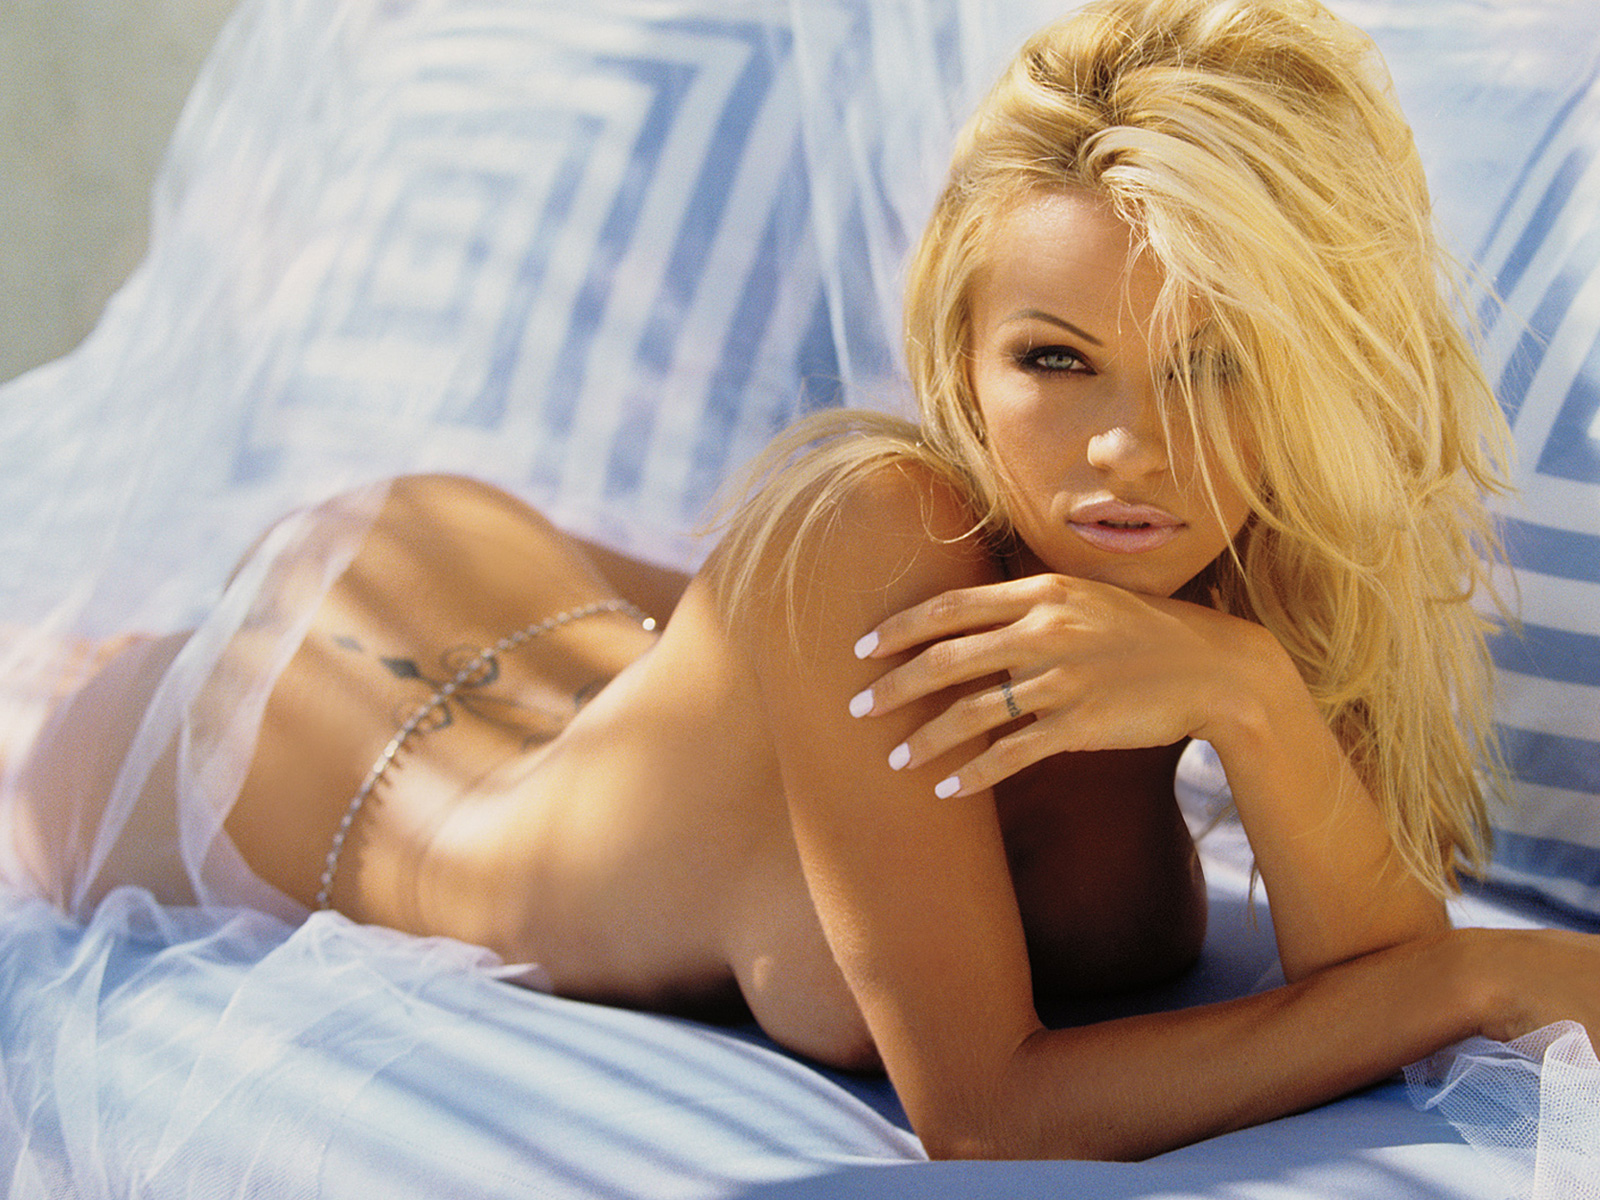 pamela_anderson_playboy_nude_naked_wallpaper_pambition_sexy_06